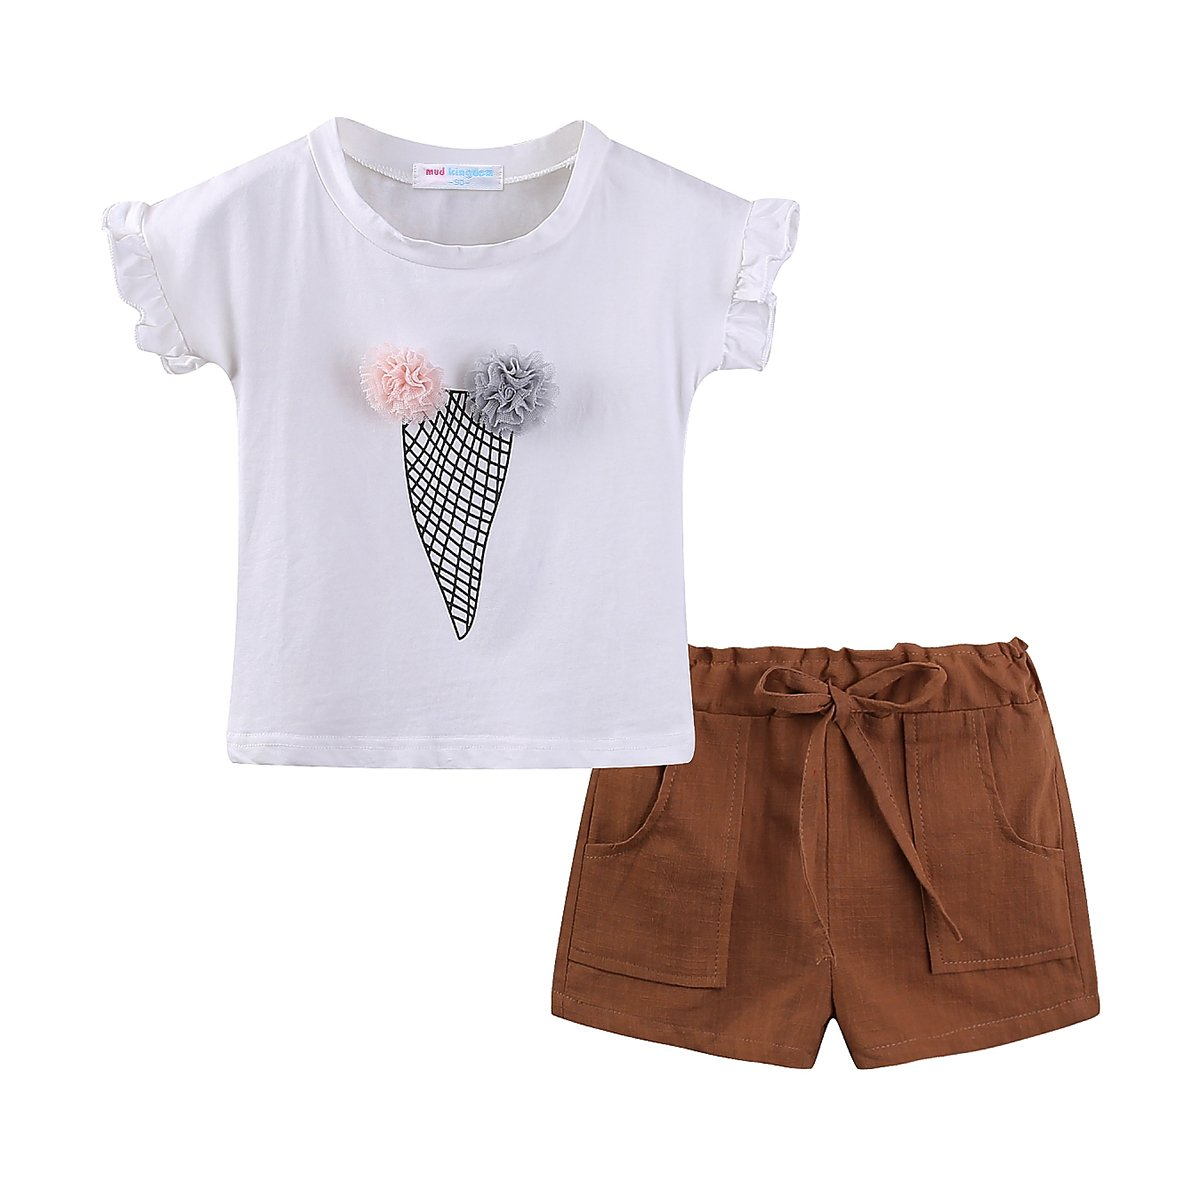 Mud Kingdom Little Girl Ice Cream Cone T-Shirt and Short Clothes Set 6-7T